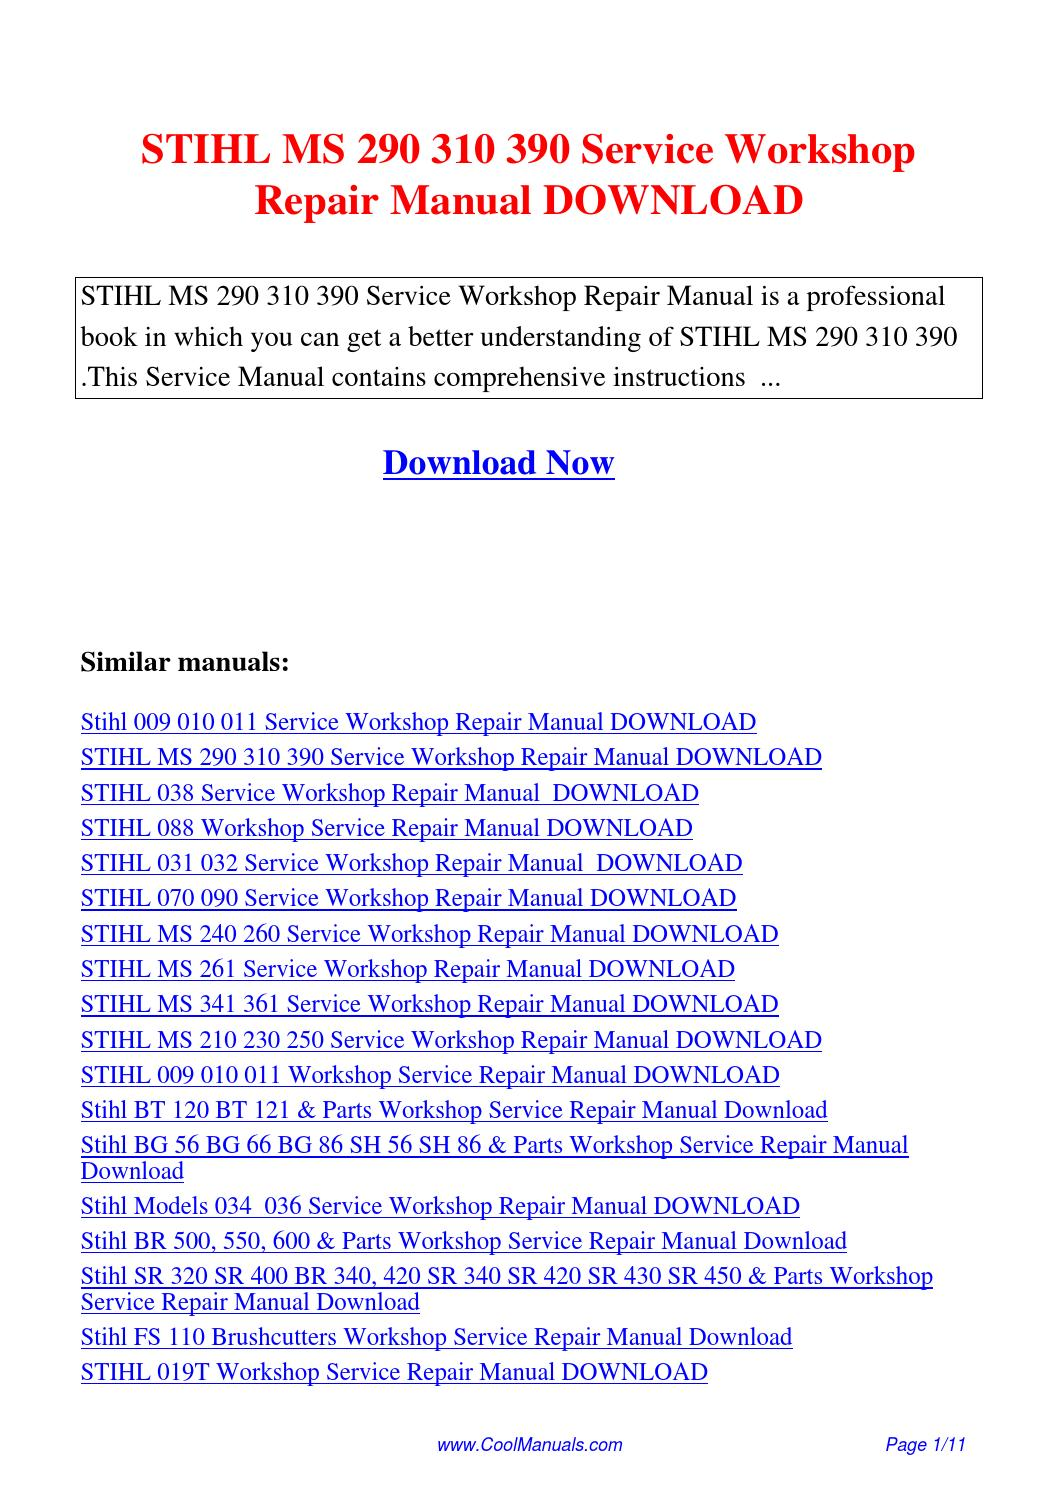 Stihl ts400 repair manual pdf